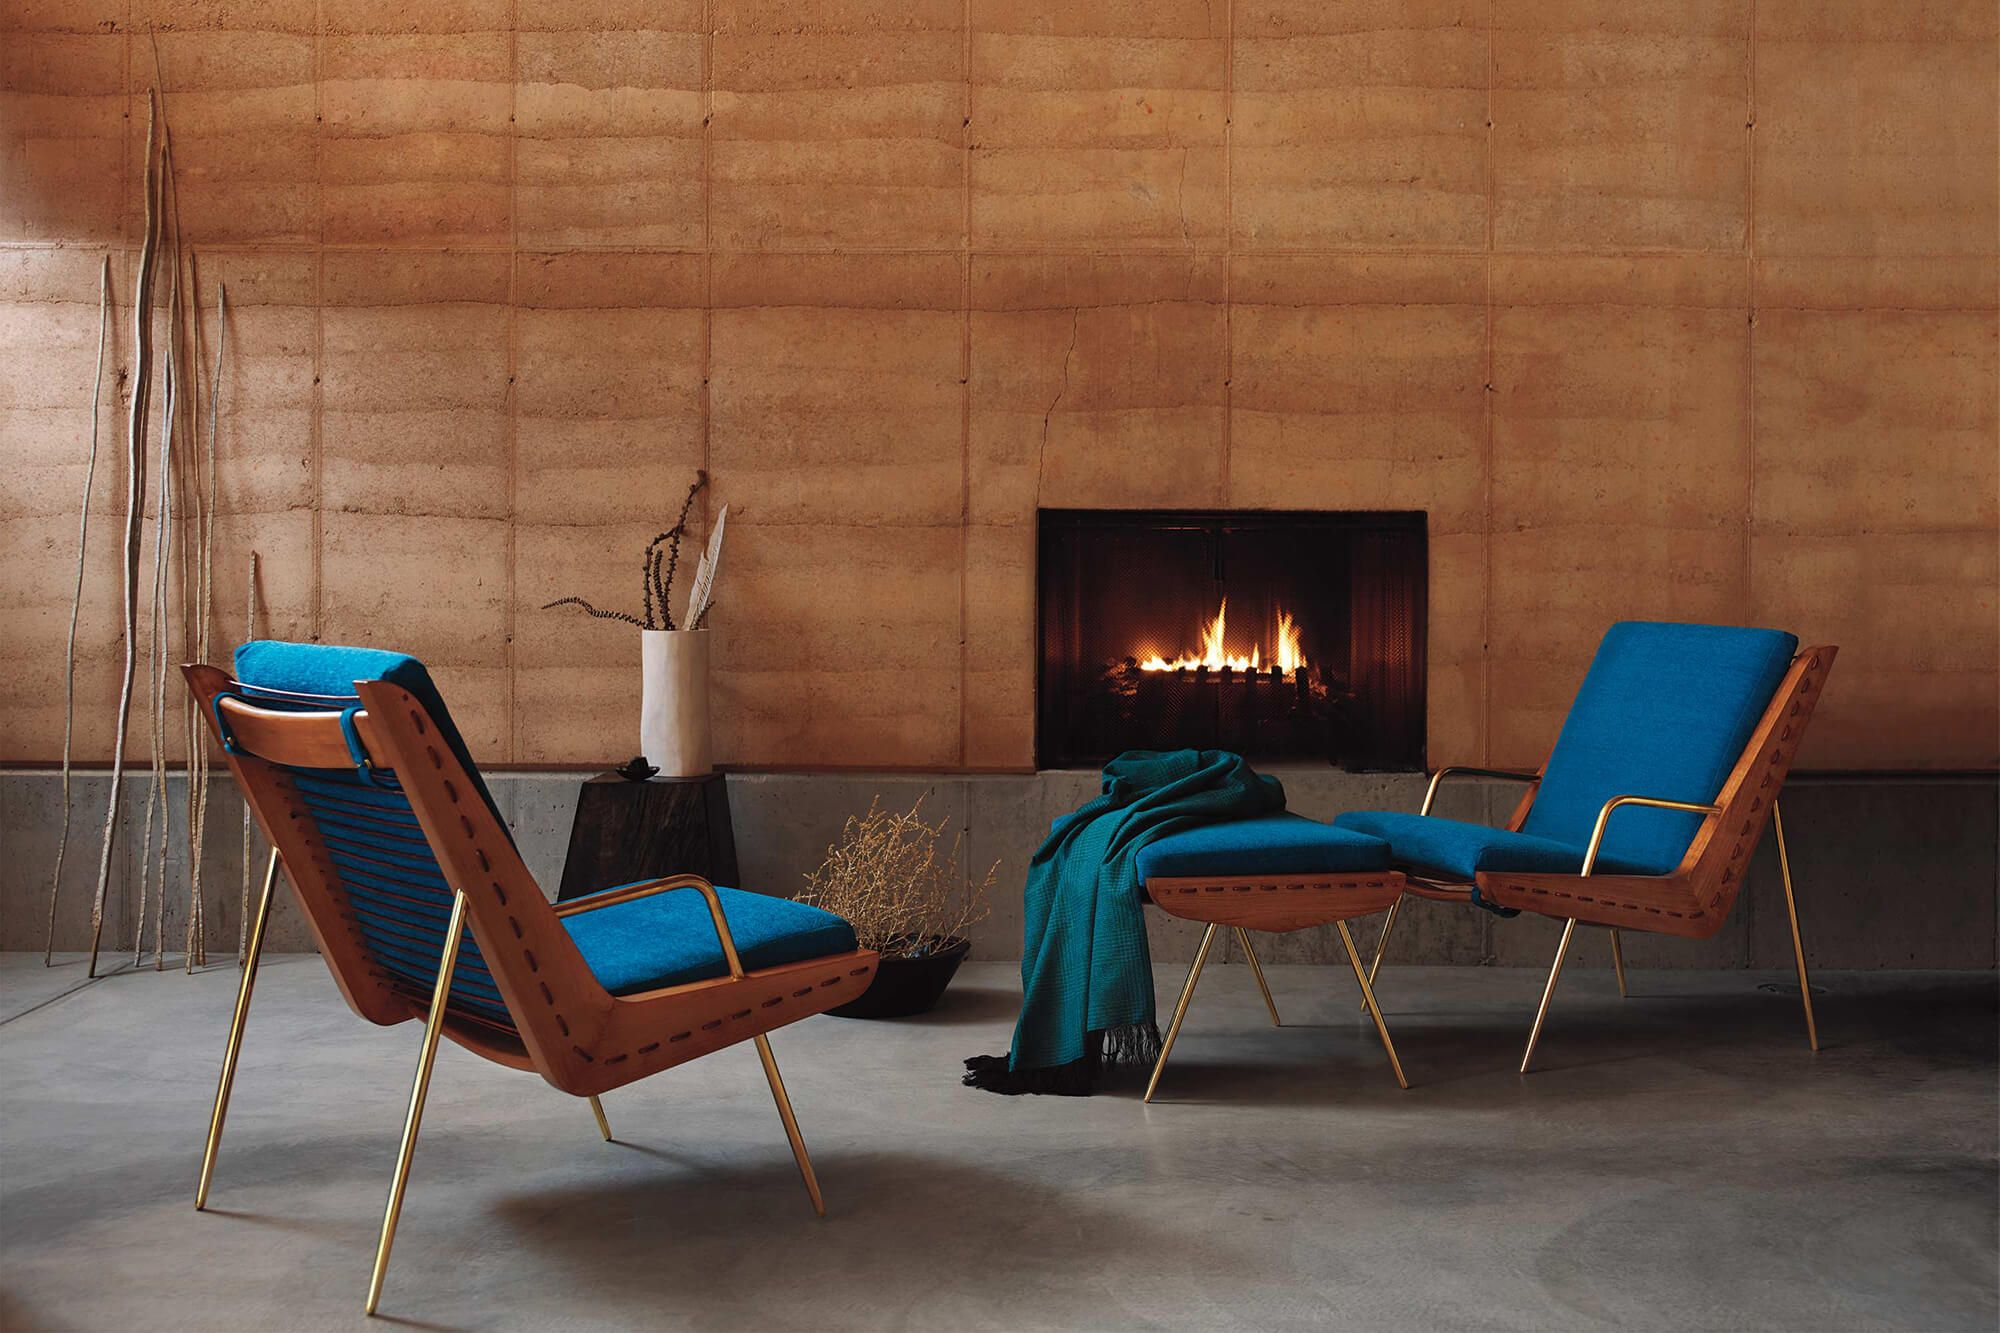 Chairs Upholstered In Teal Sunbrella Fabric Sit In Front Of A Fireplace